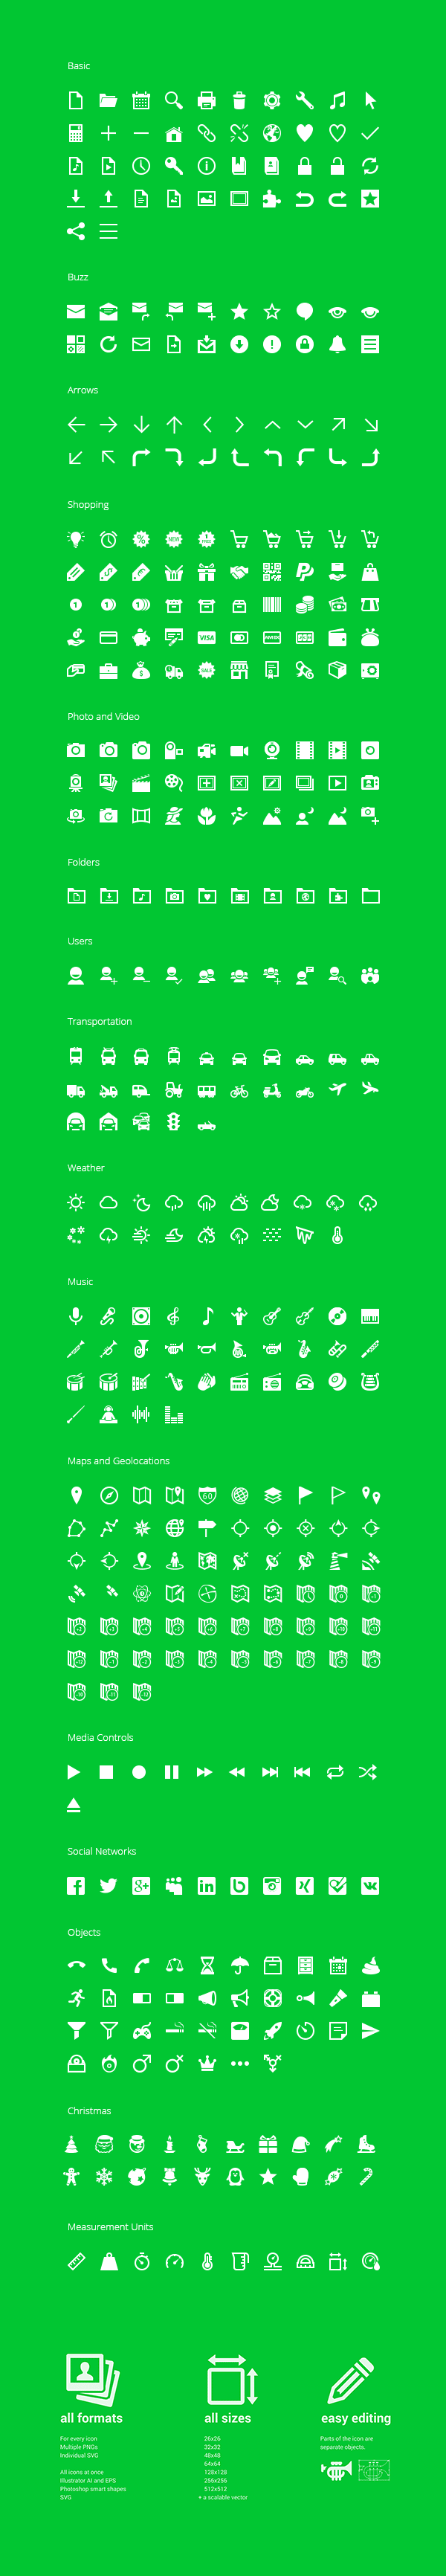 350-Free-Android-Icons